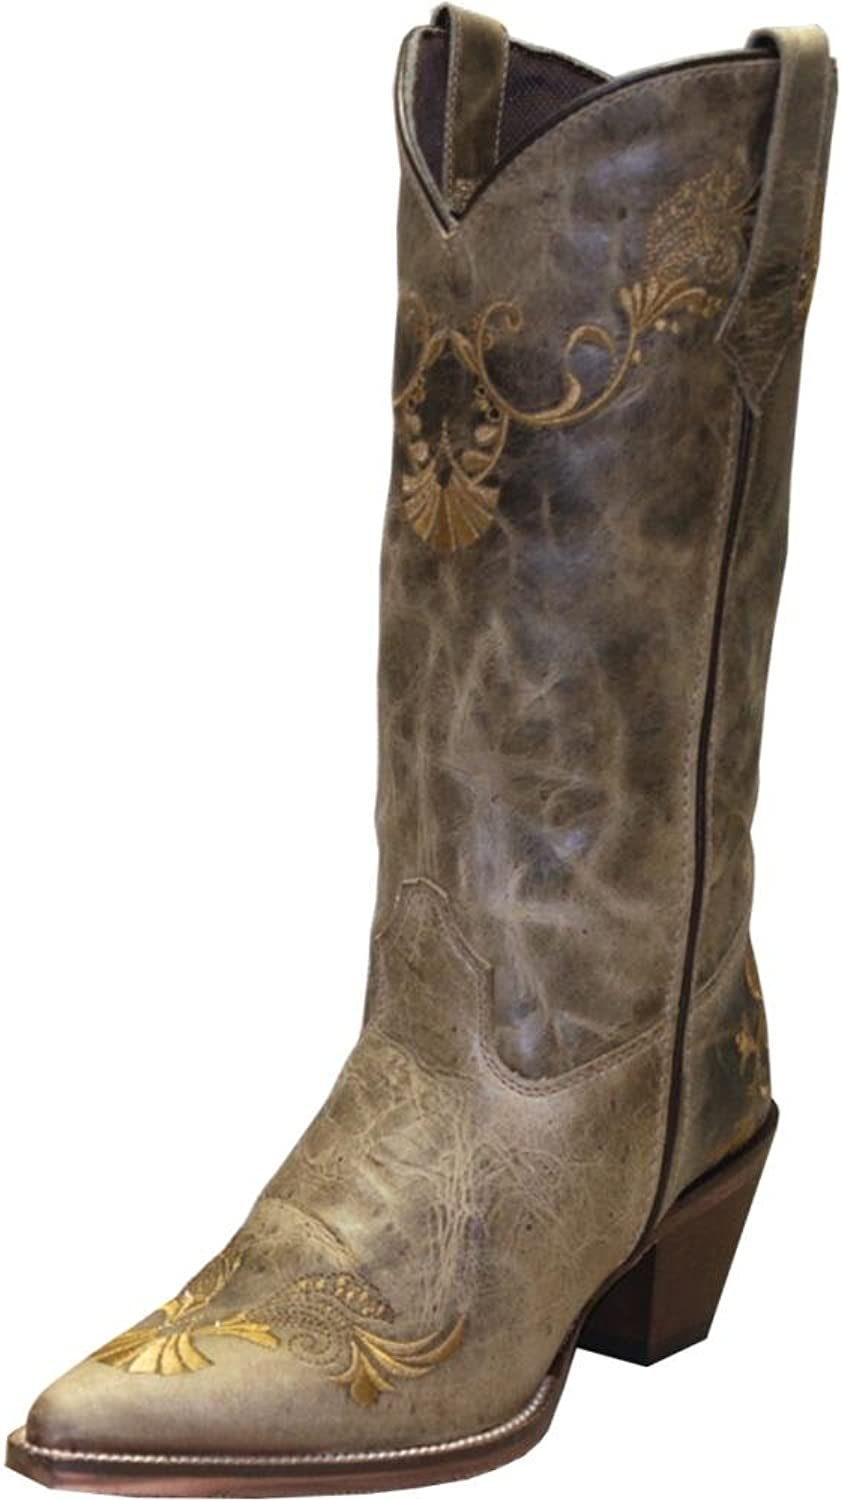 Abilene Women's Rawhide By Boot Embroidered Western Pointed Toe Tan US